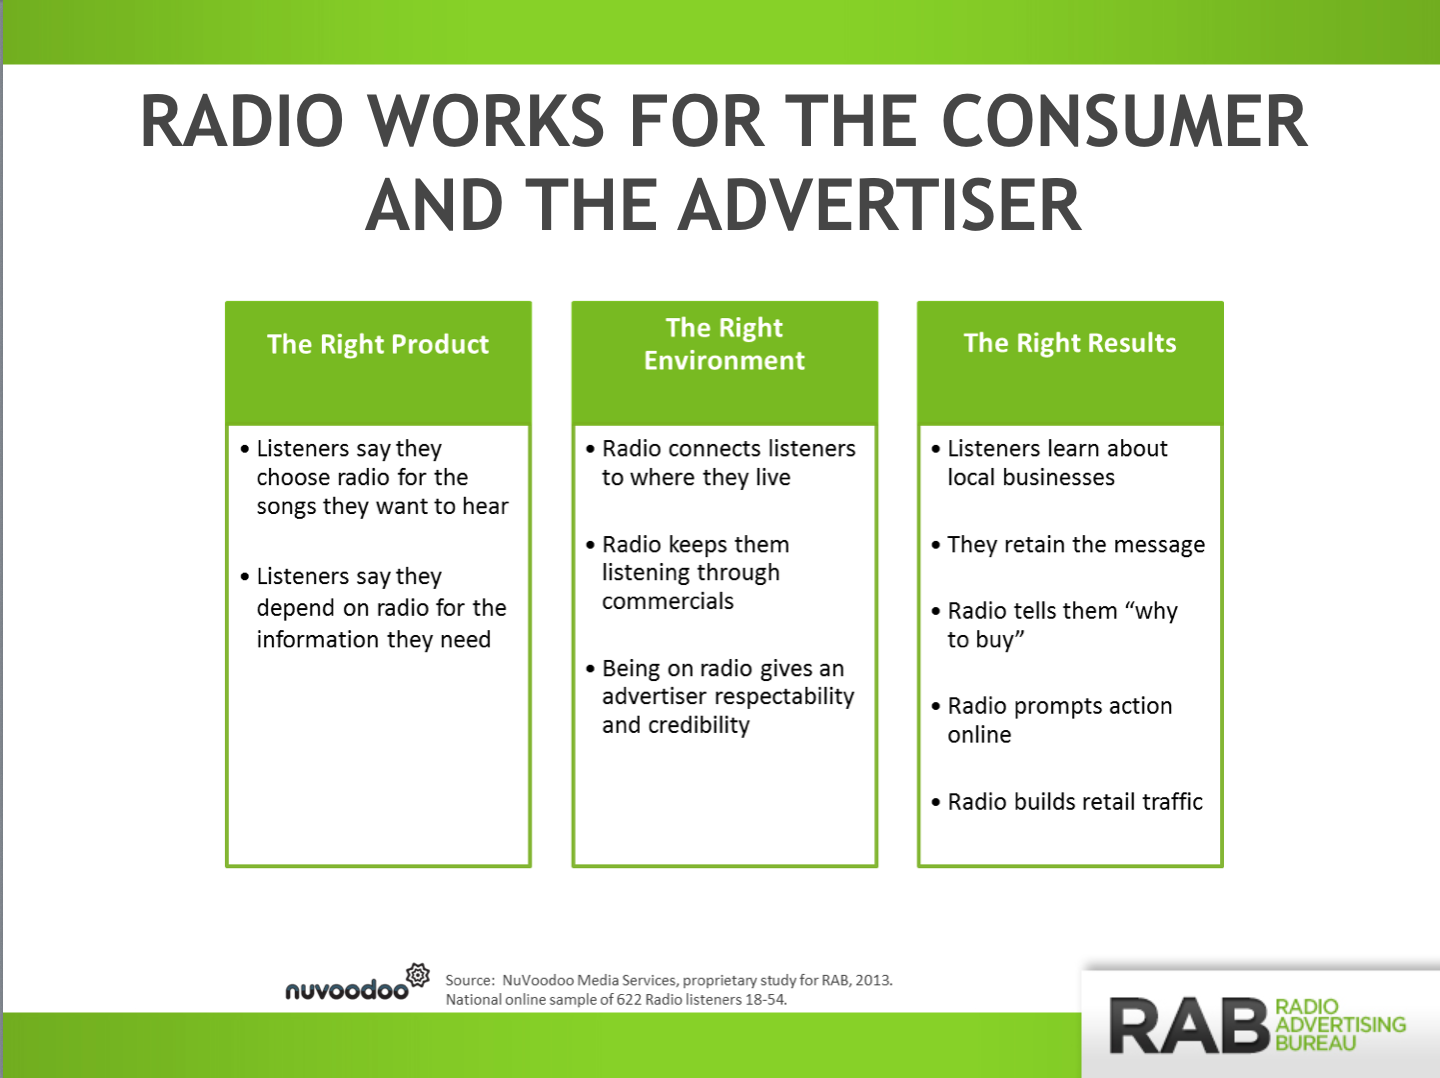 Radio works for the consumer and the advertiser